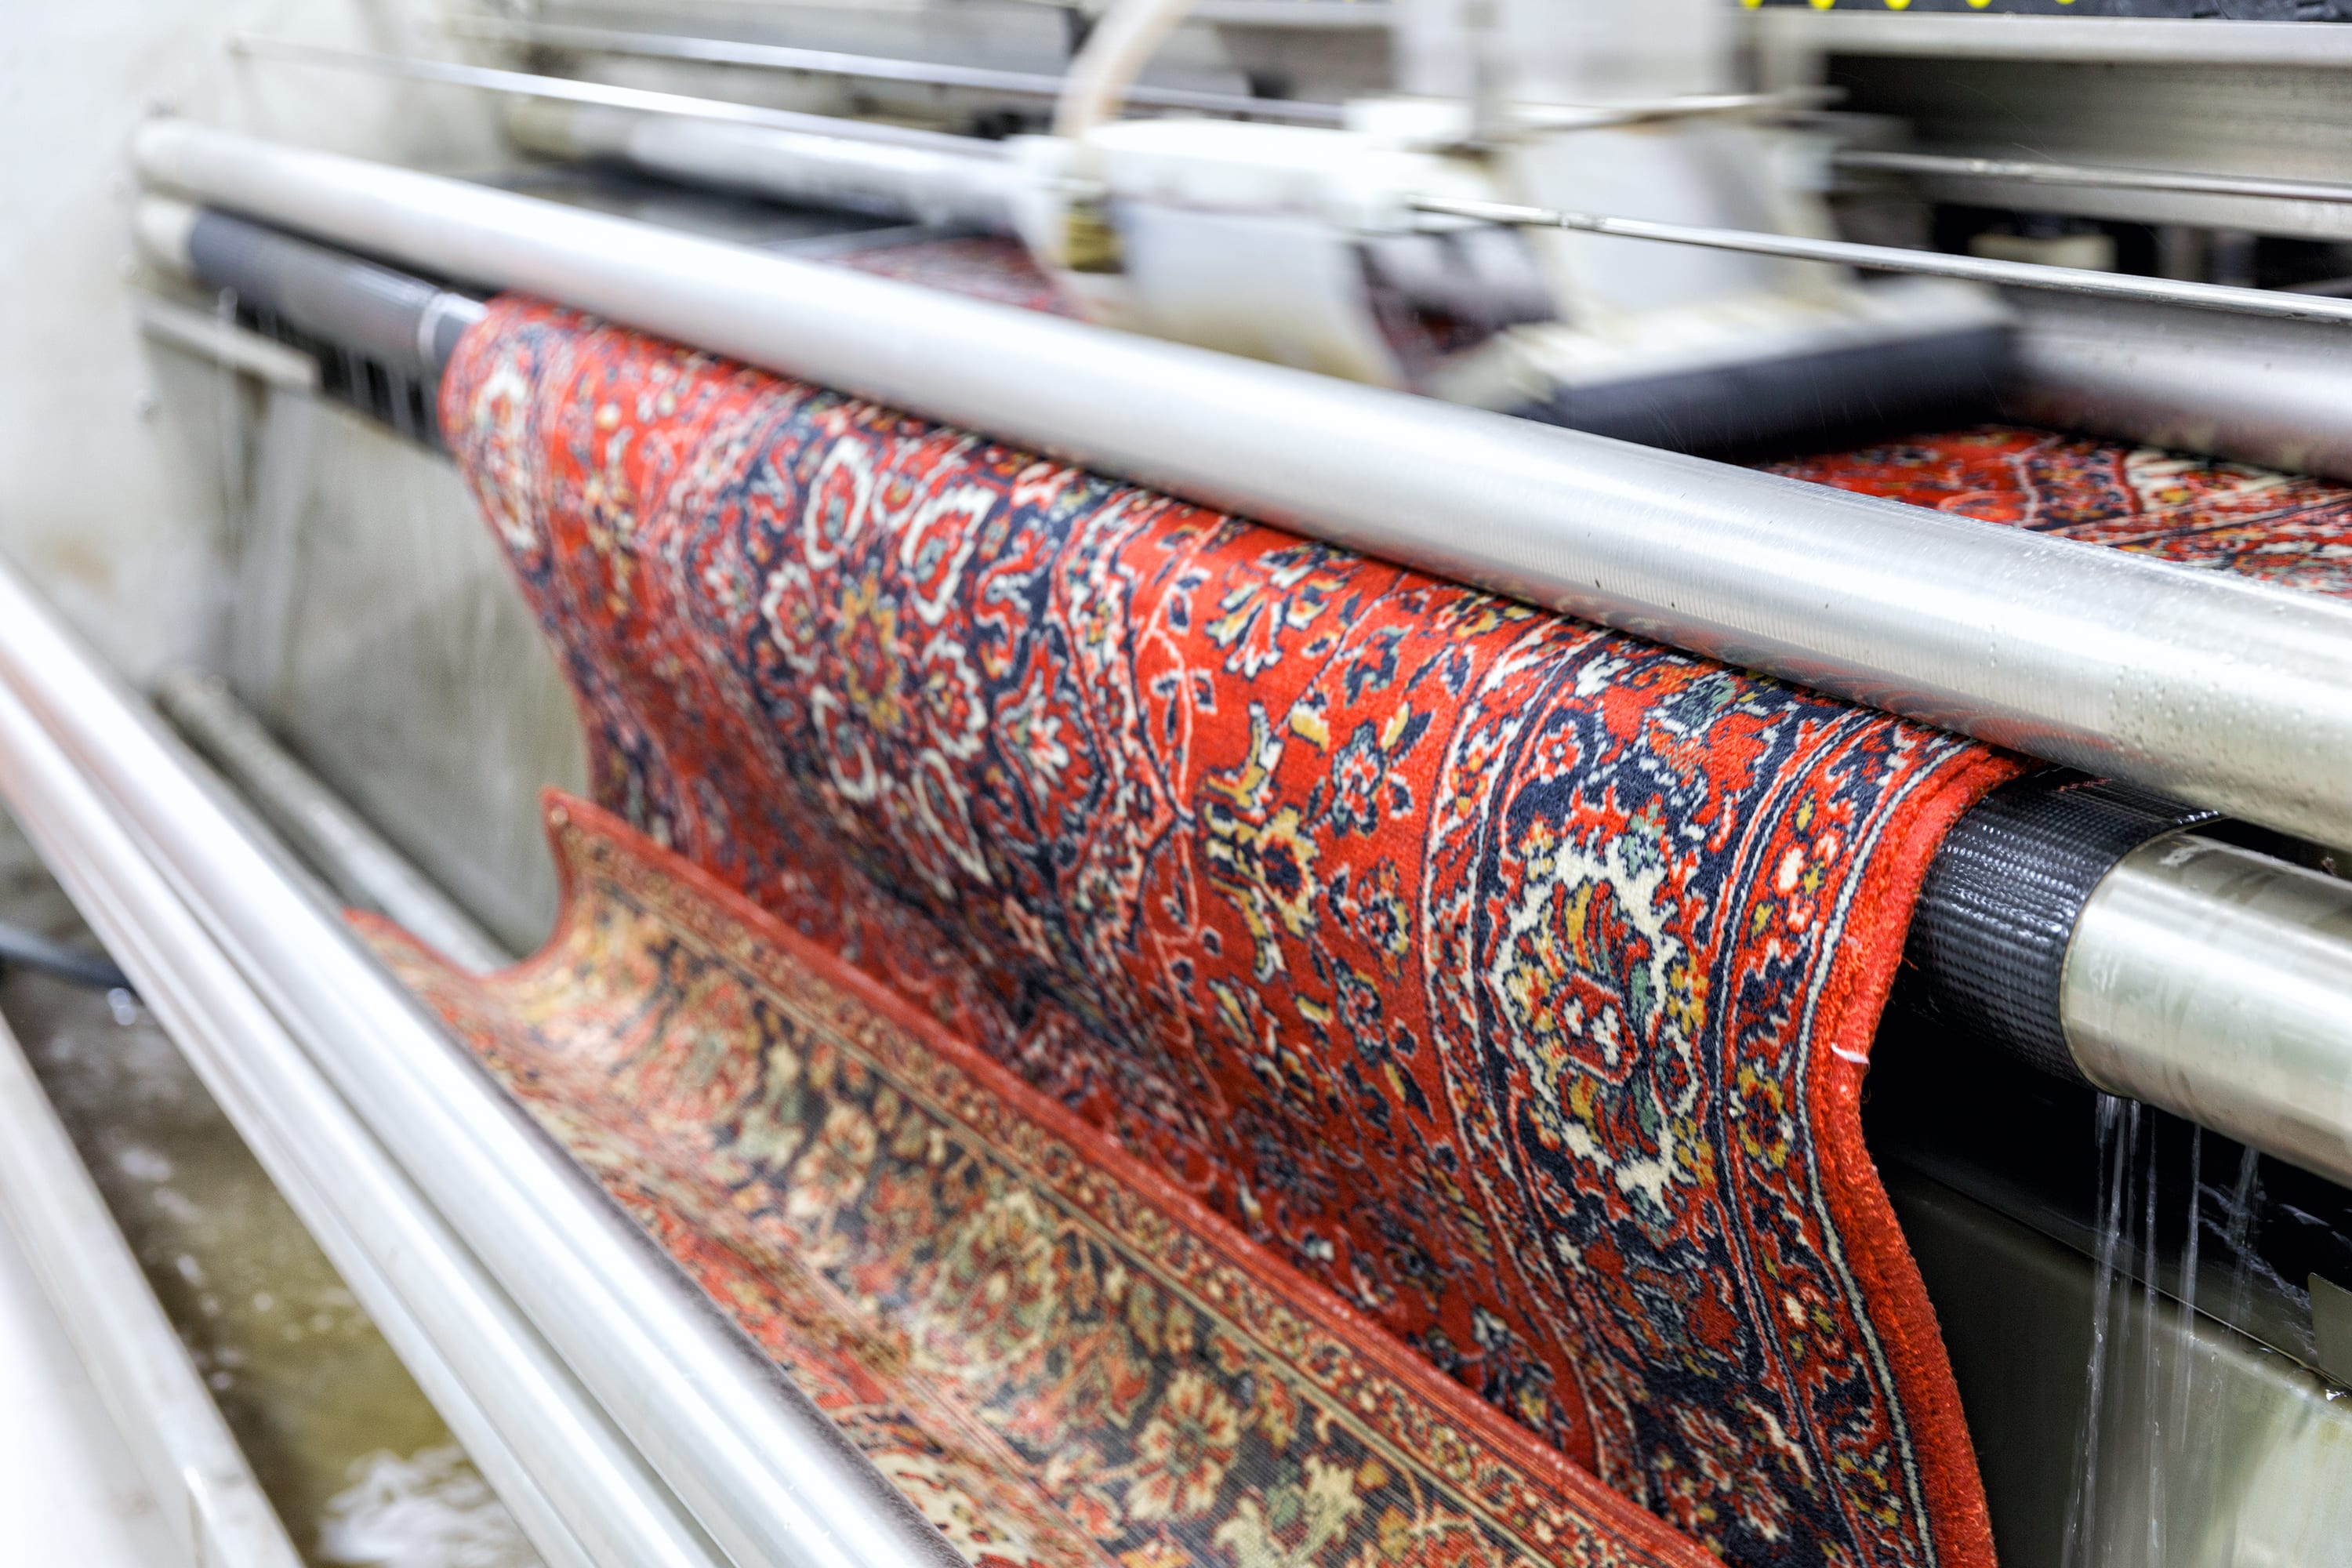 Automatic-washing-and-cleaning-of-carpets.-Industrial-line-for-washing-carpets-1132815771_3000x2000